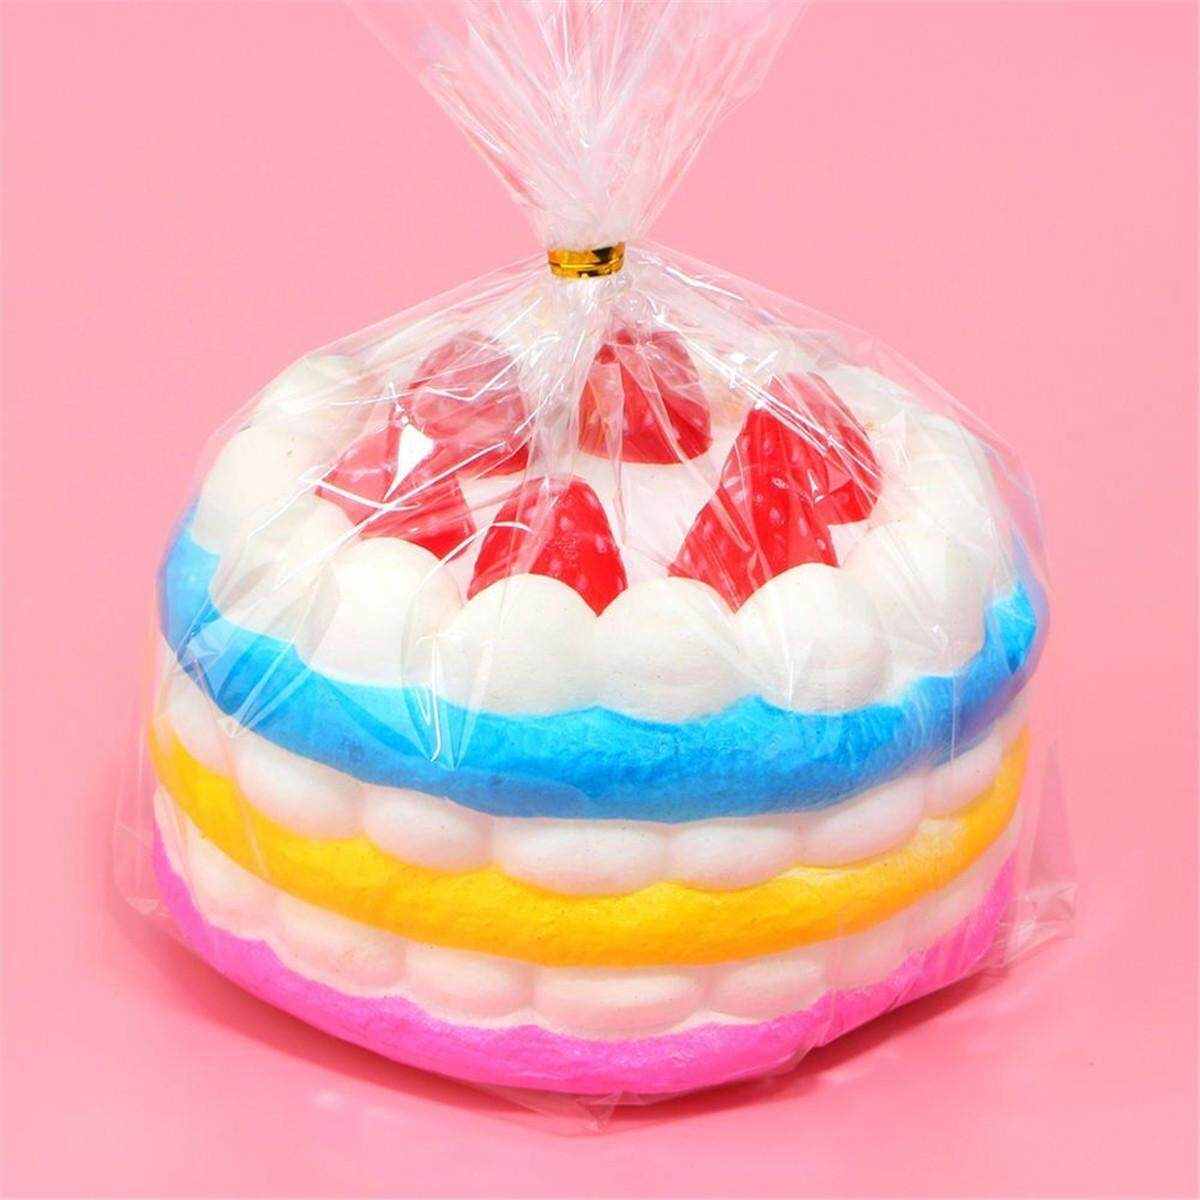 Squishy Cake Strawberry Kue Tart Jumbo Murah Daftar Harga Terkini Mao Rusa Detail Gambar Rainbow Birthday Cream Super Slow Rising Scented Terbaru